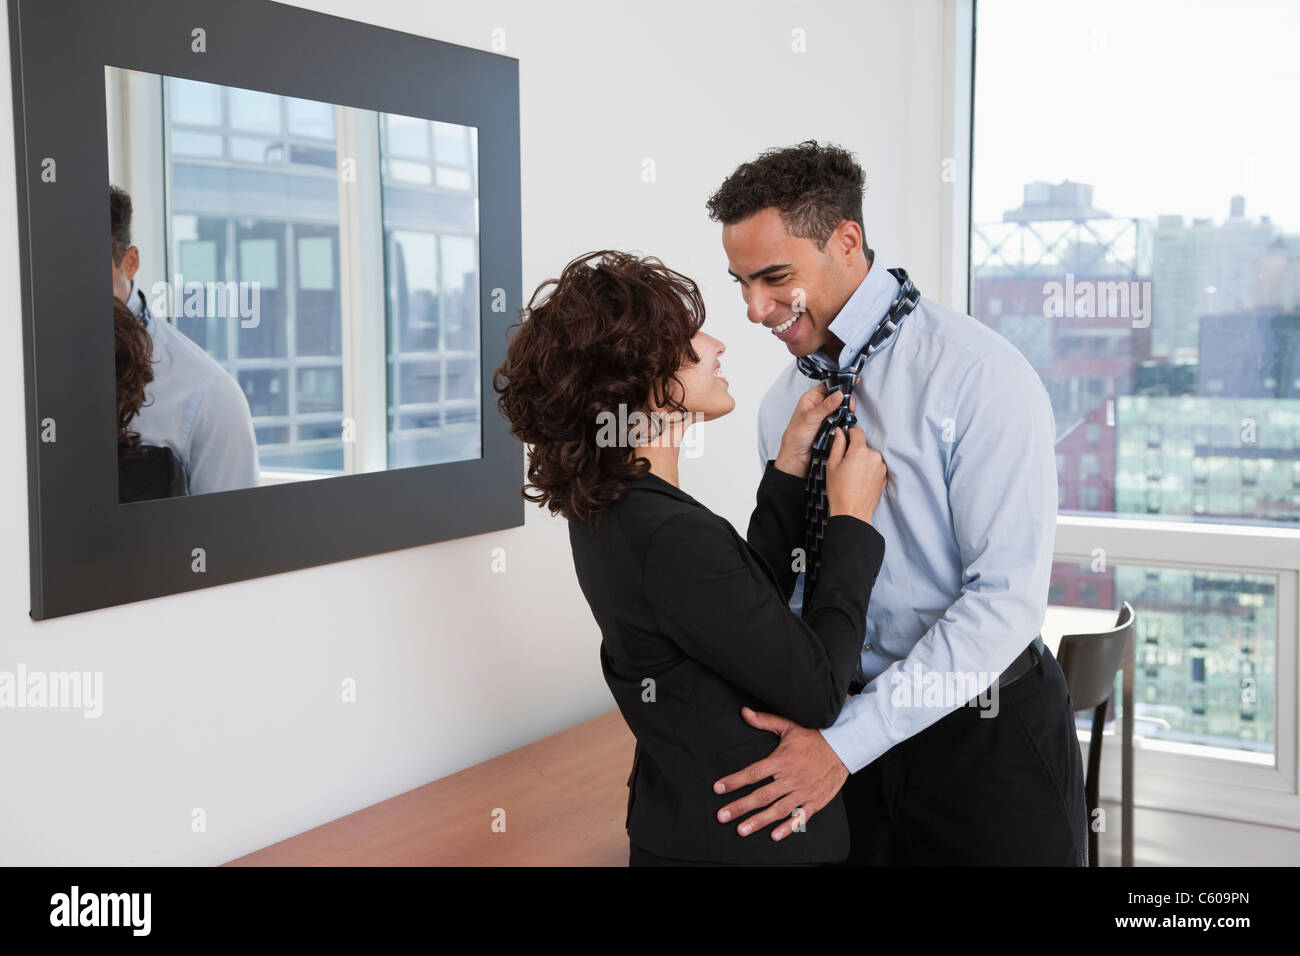 USA, New York, New York City, young woman helping smiling man tying tie in hotel room - Stock Image